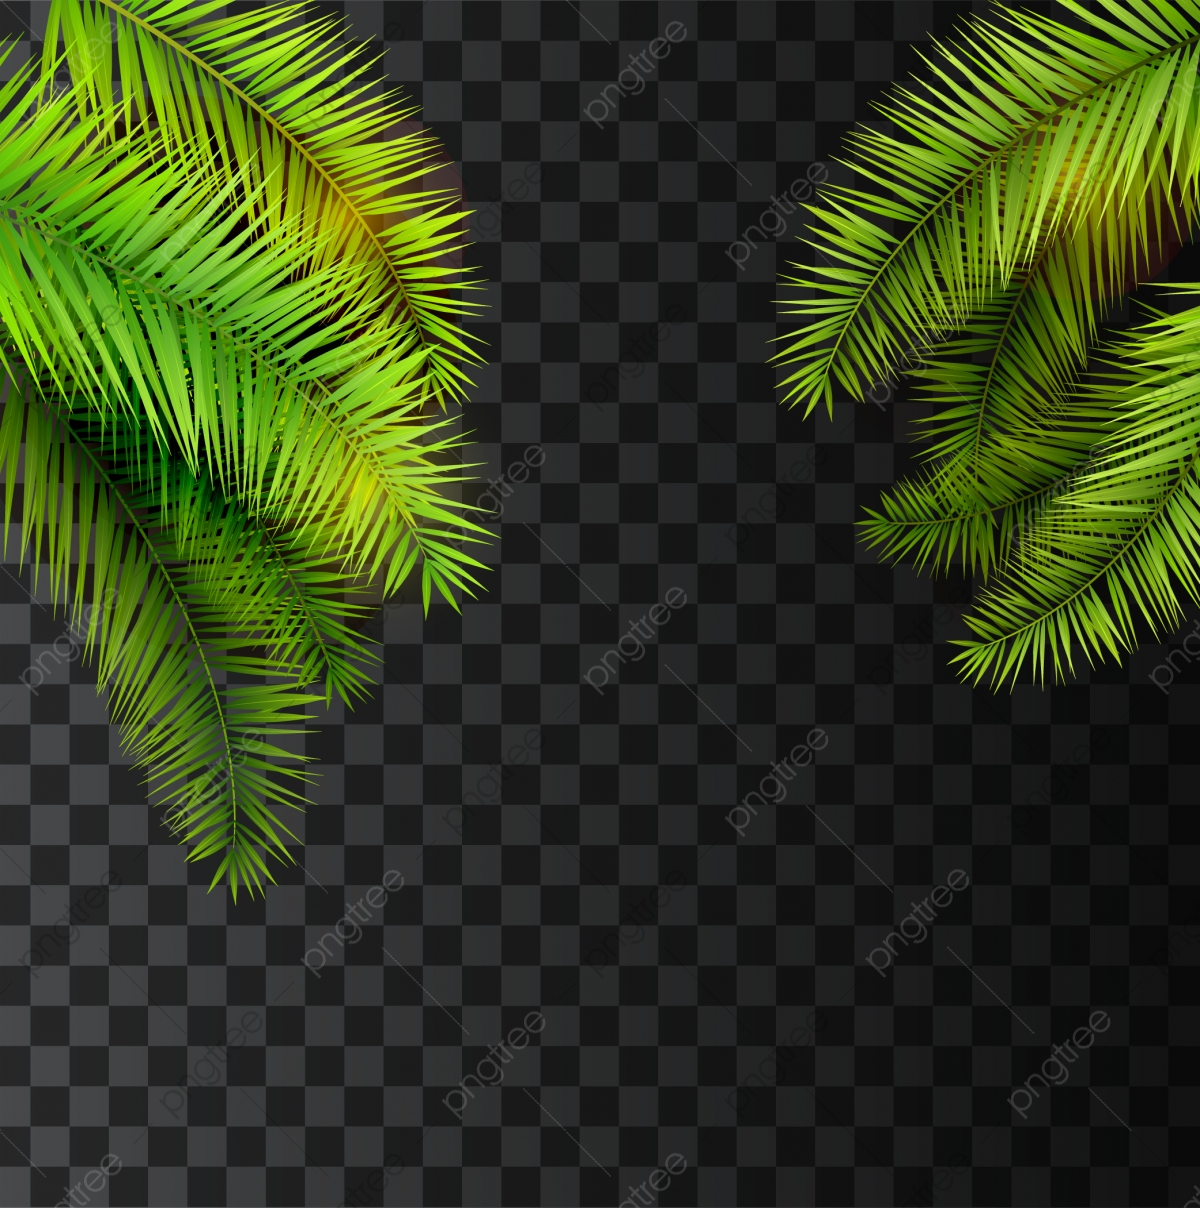 Palm Leaves Png Images Vector And Psd Files Free Download On Pngtree